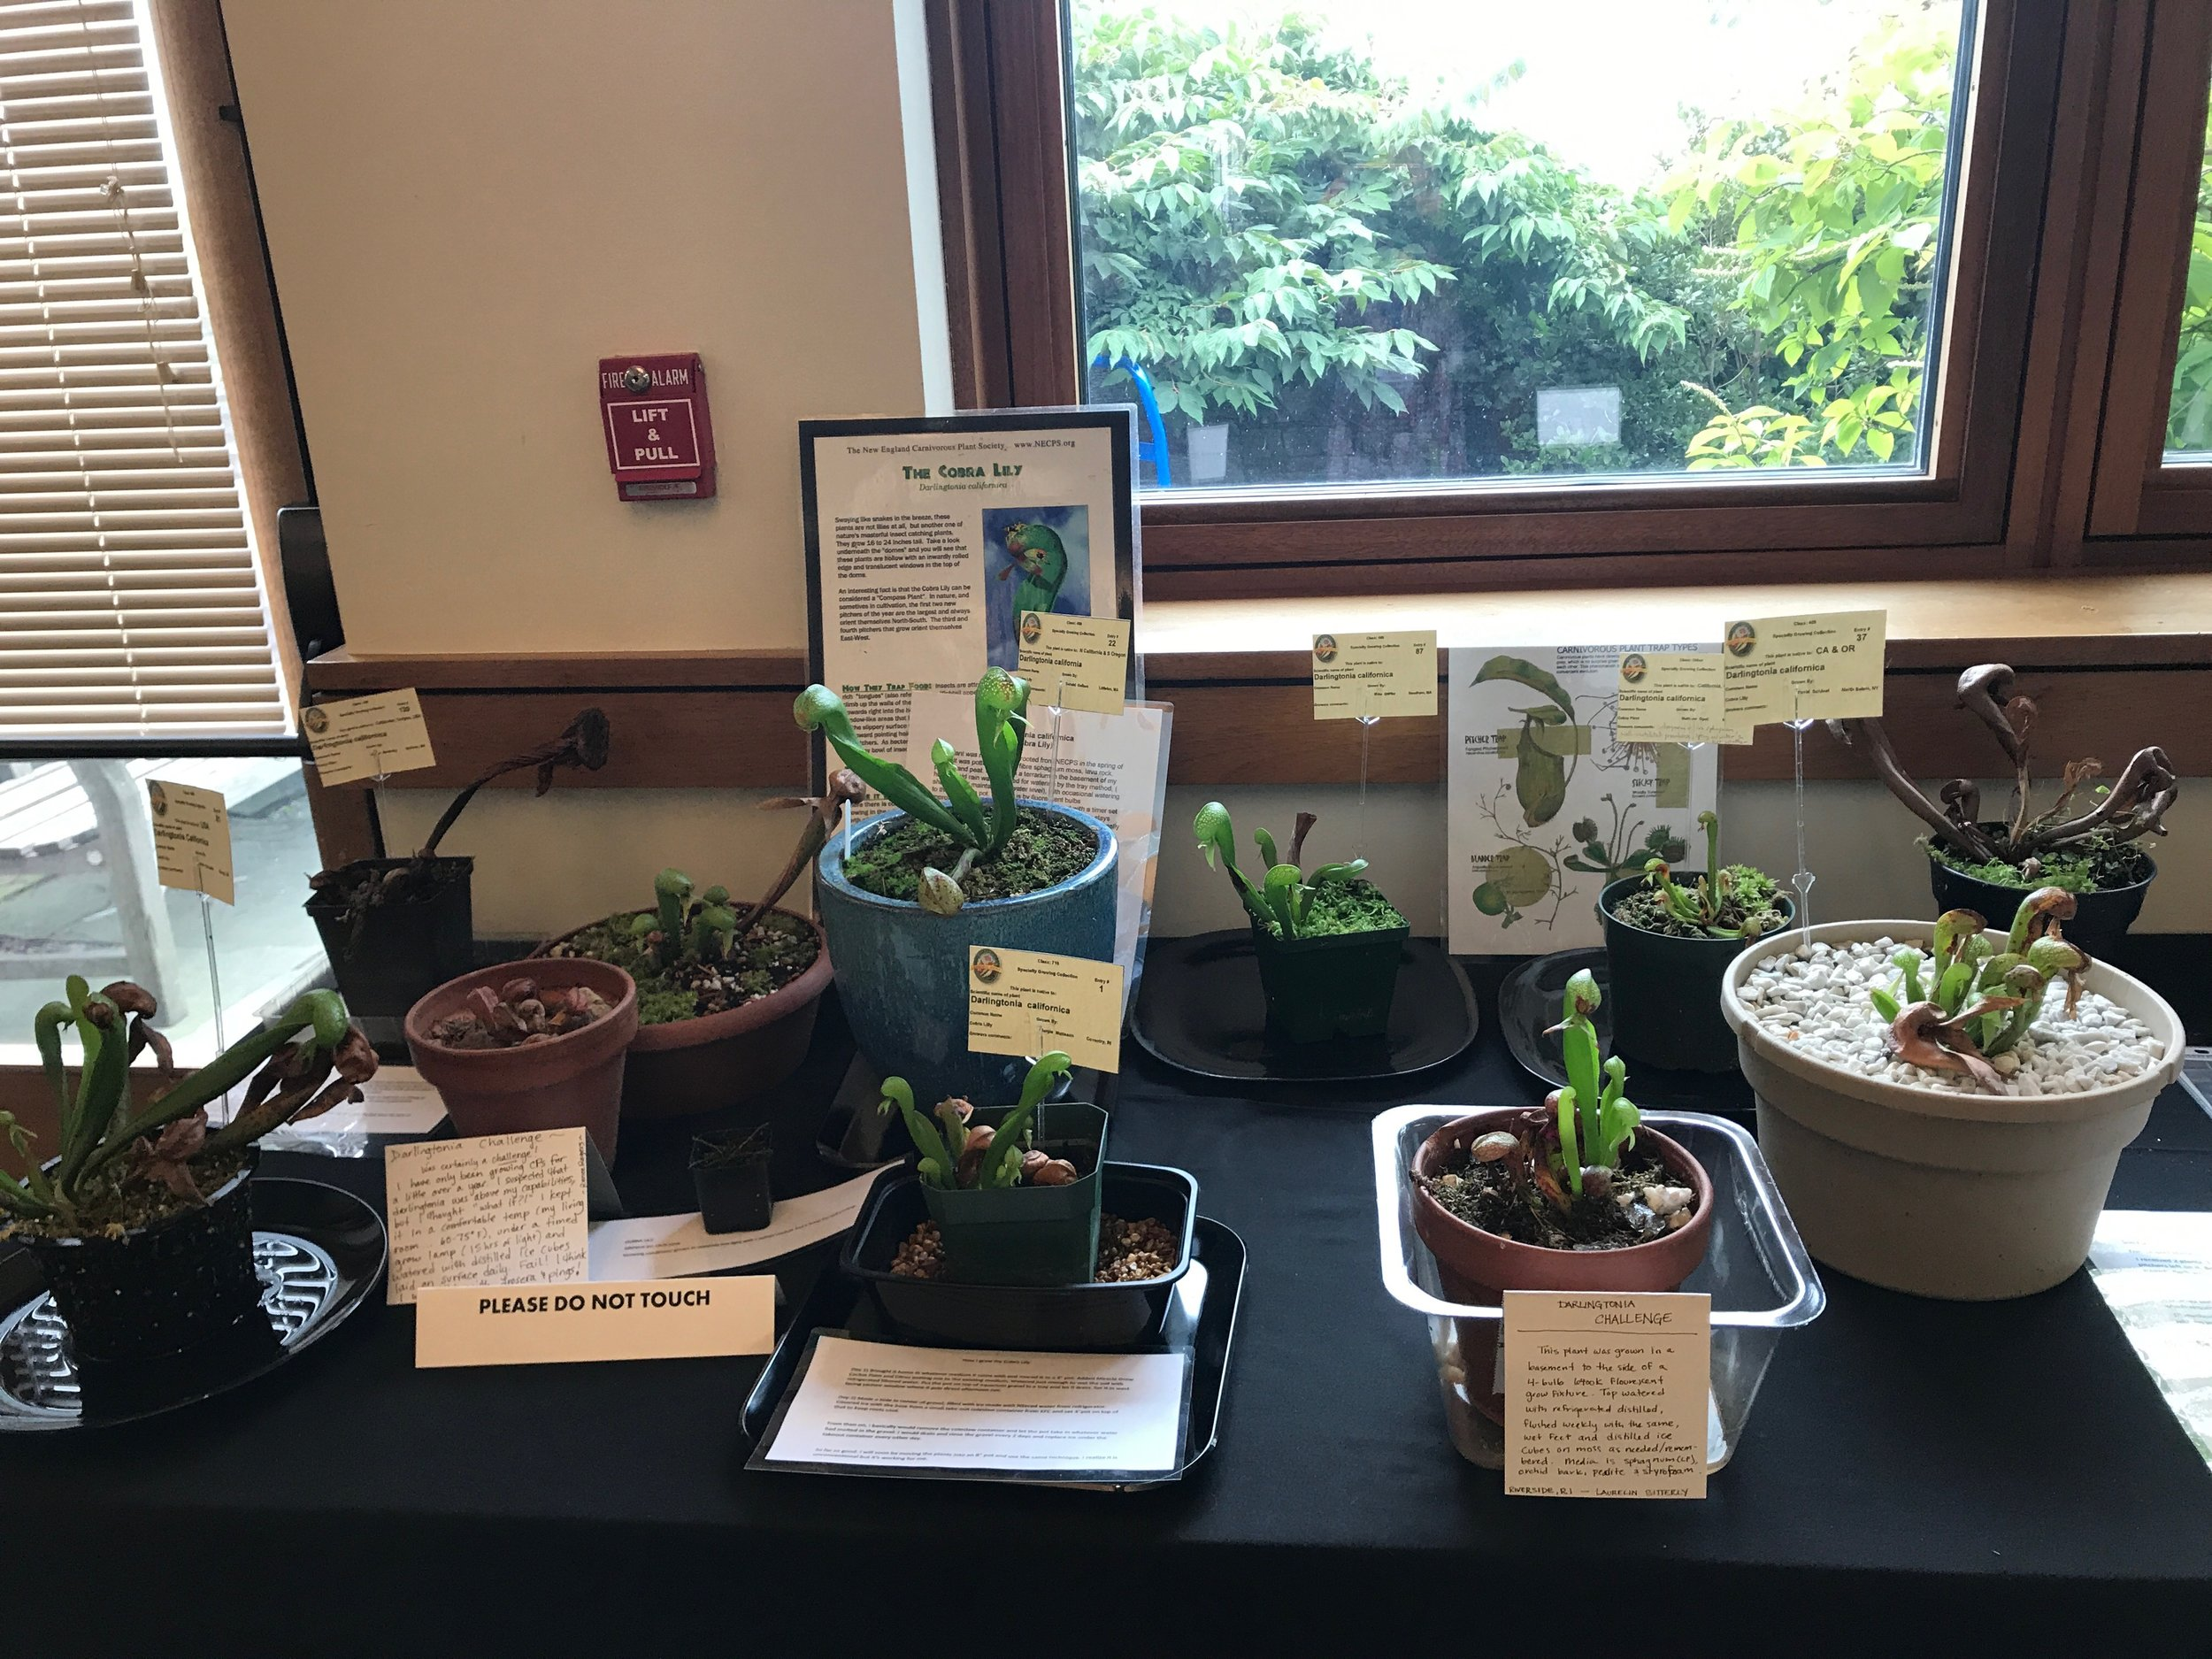 """The  Darlingtonia  Challenge"" display. This year, NECPS promoted a ""Who can grow  D. californica  the best?"" contest. Those who were willing to take the challenge got a free  D. californica  from the society, found his/her own way to grow this notoriously difficult to grow plant in cultivation."